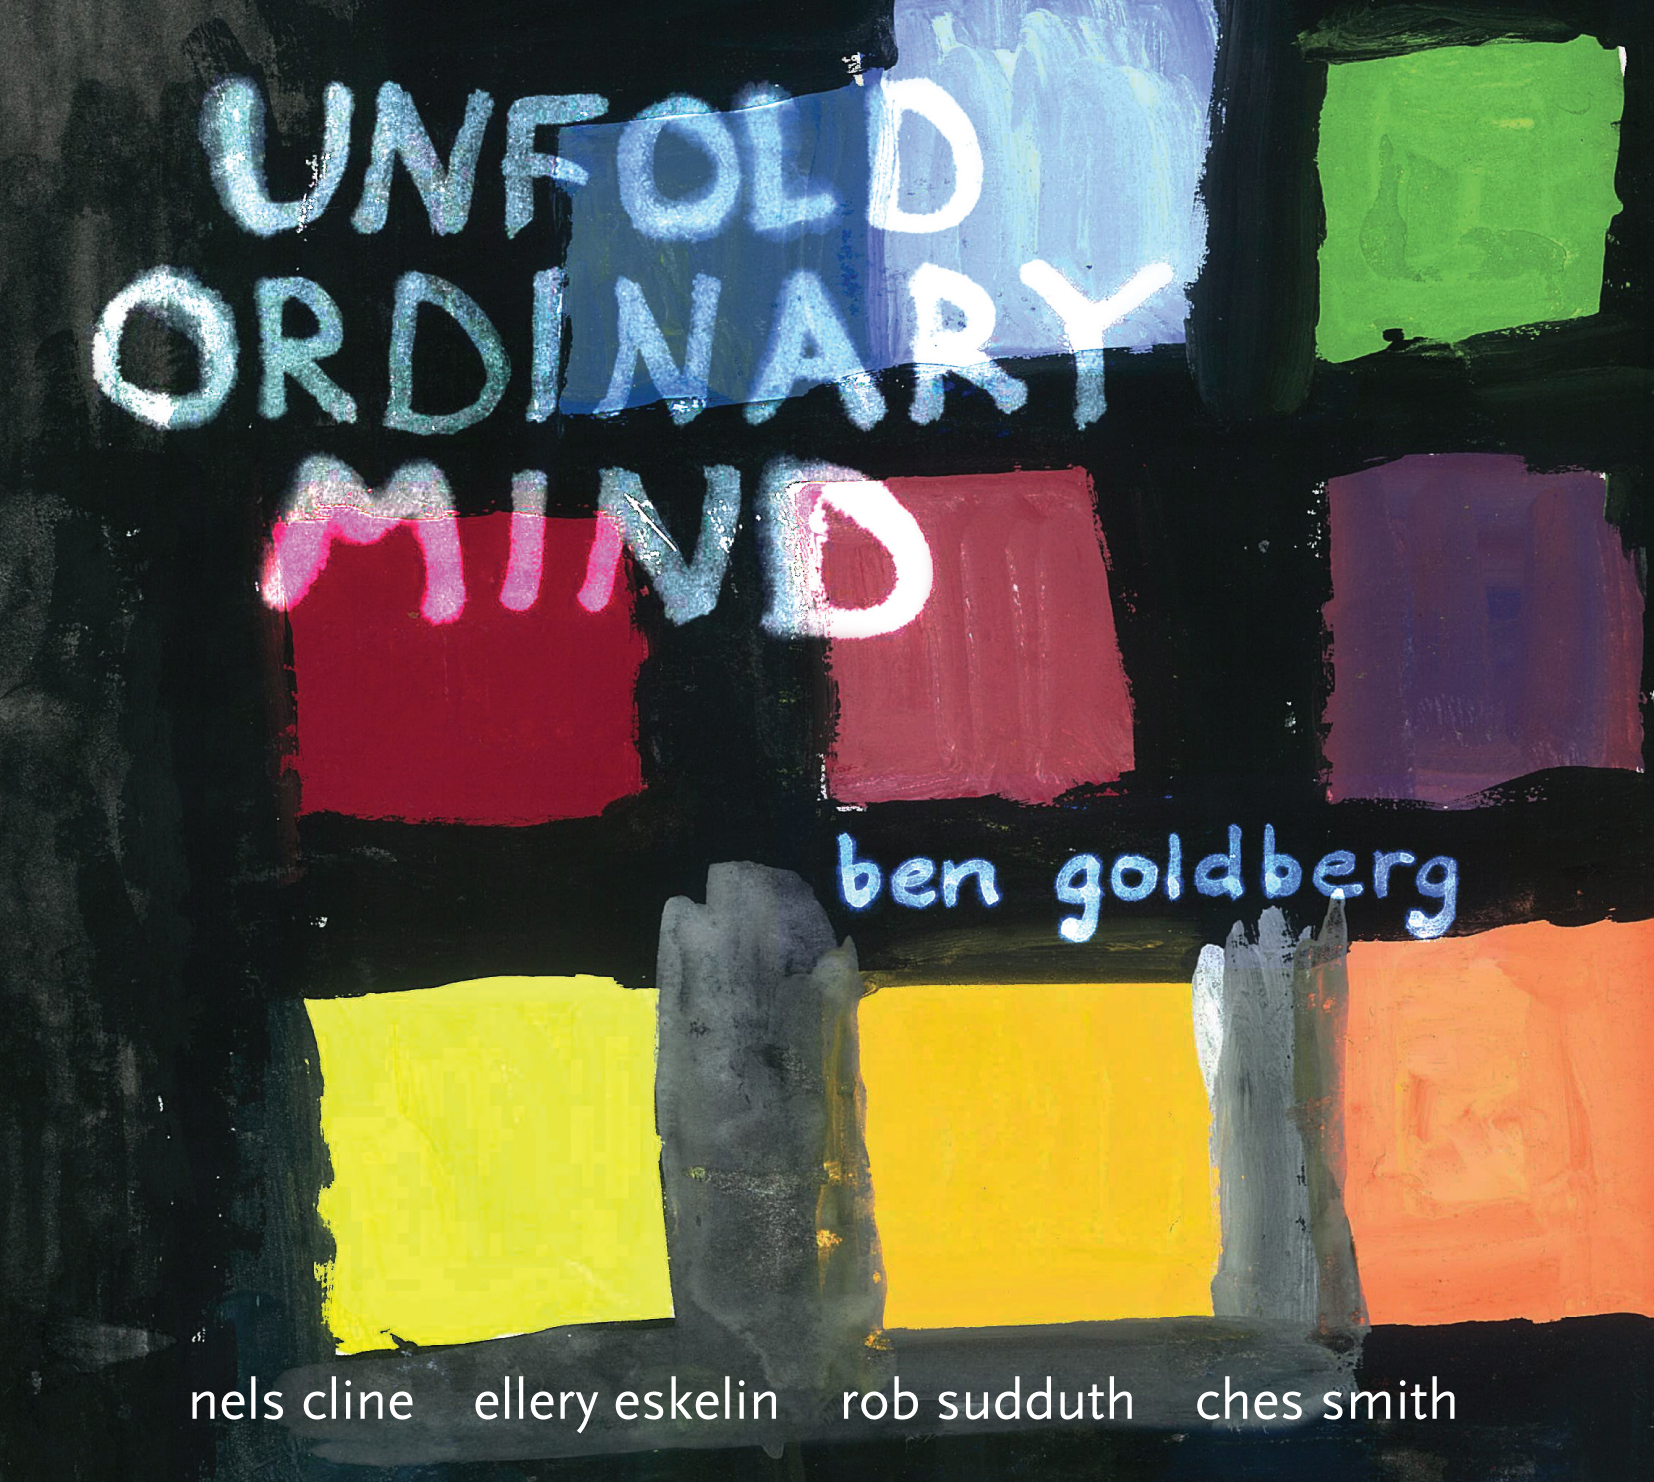 Unfold_ordinary_mind_-_new